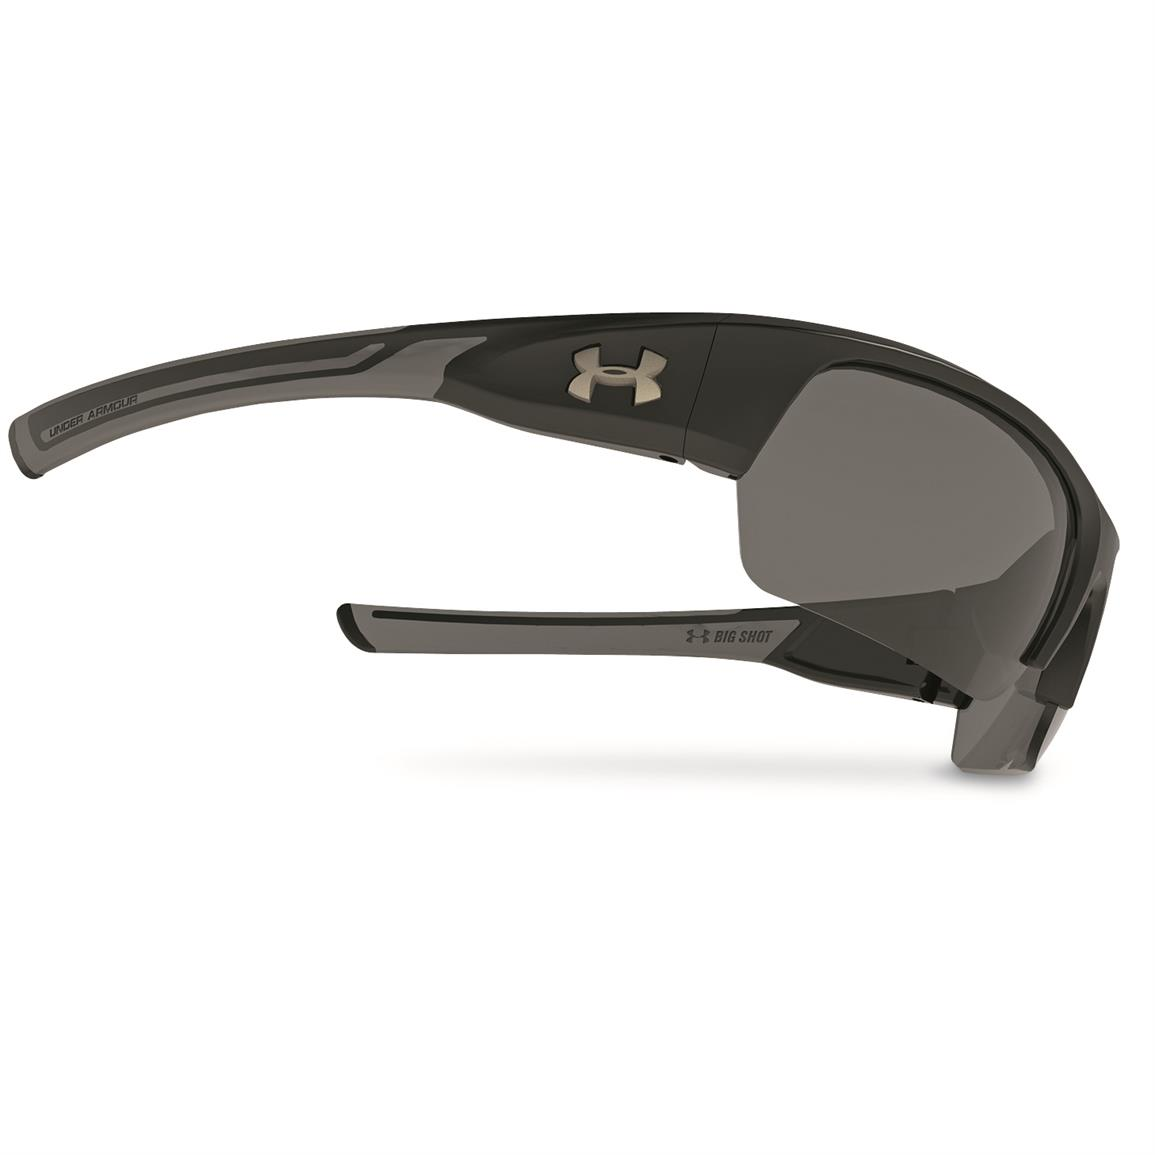 763fc7eb28983 ArmourFusion frame is made from titanium and Grilamid for lightweight  durability